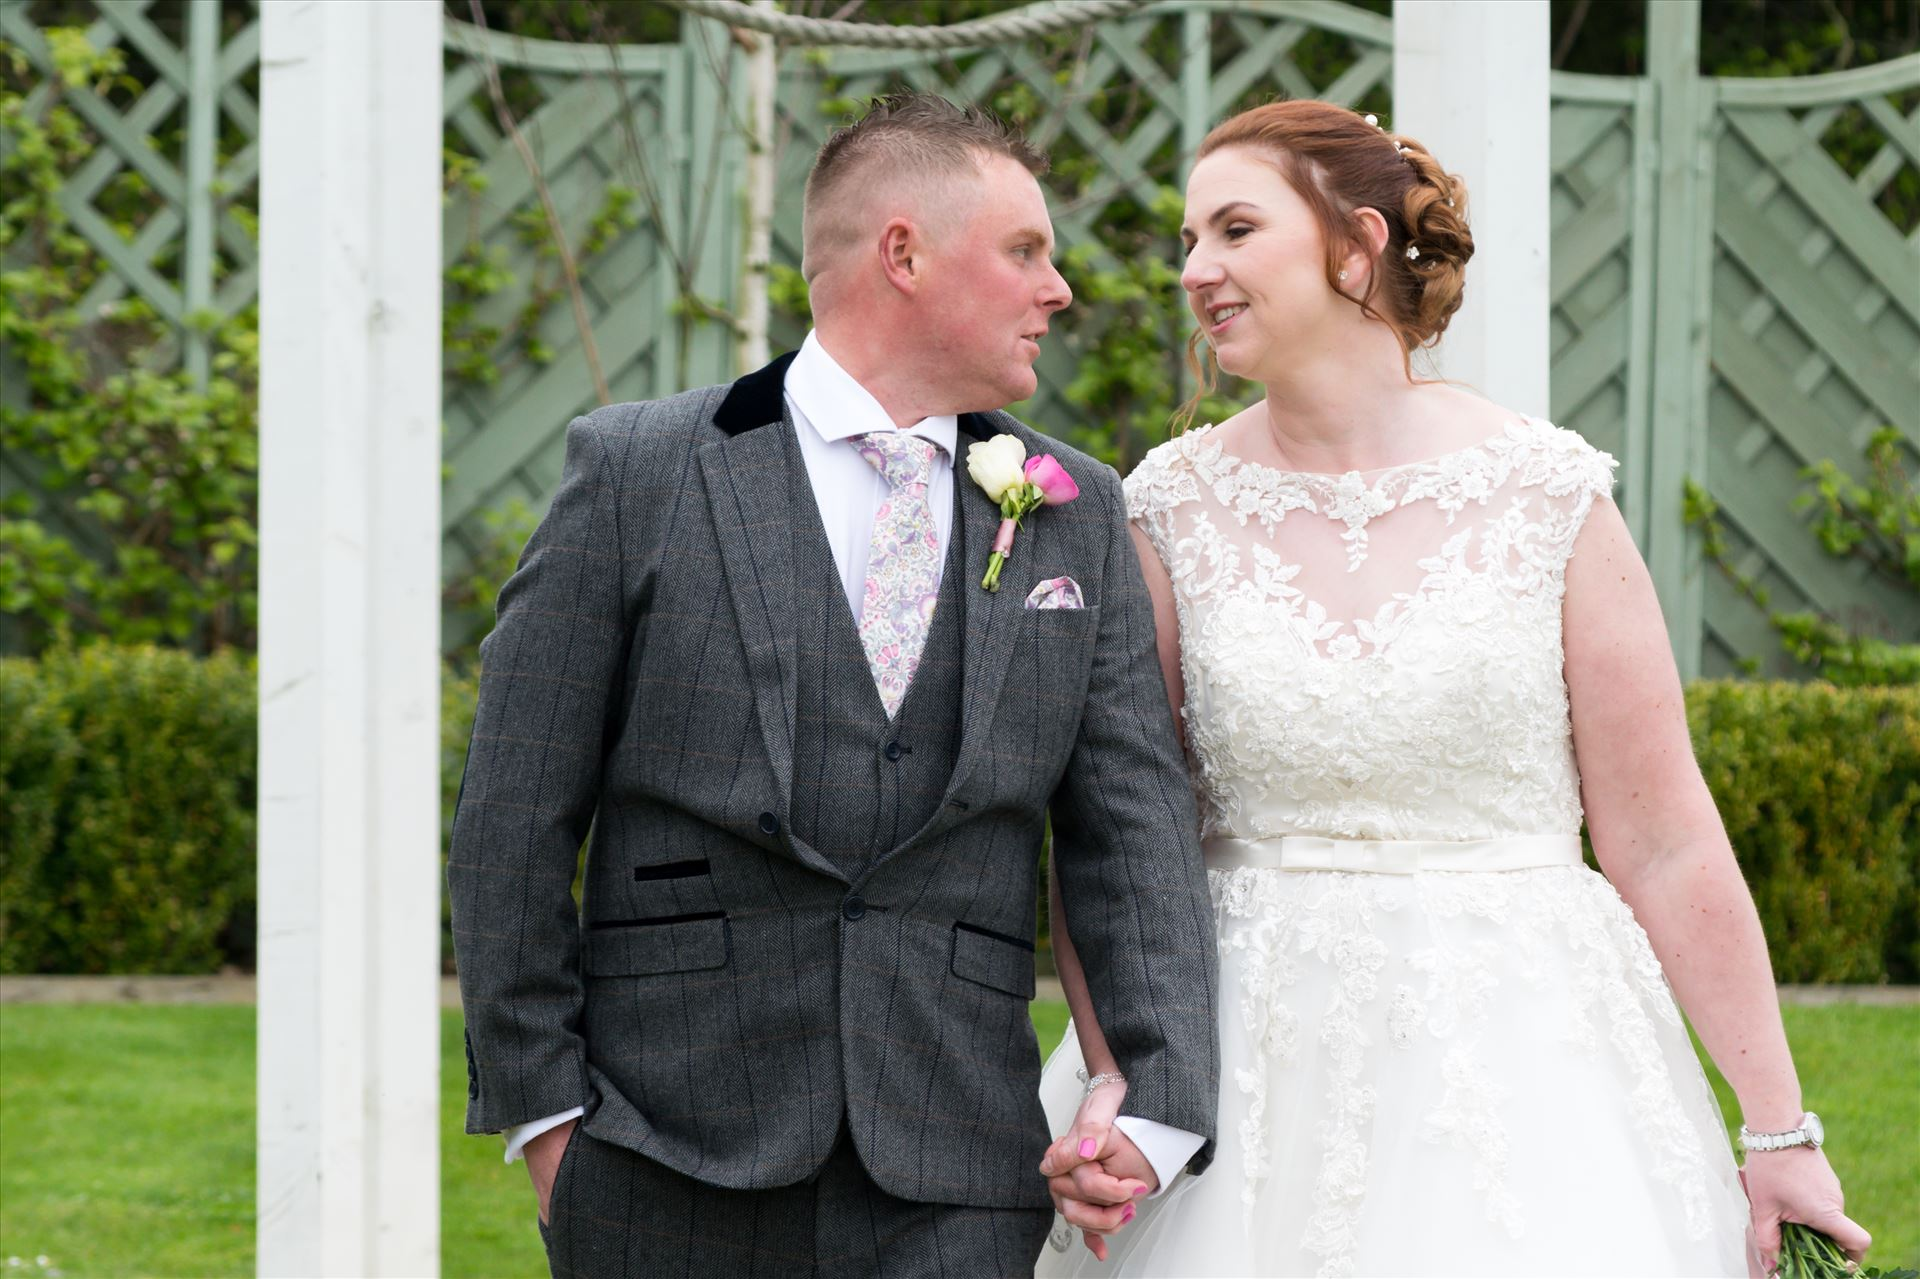 Nikky and Neils wedding-a30.jpg -  by AJ Stoves Photography